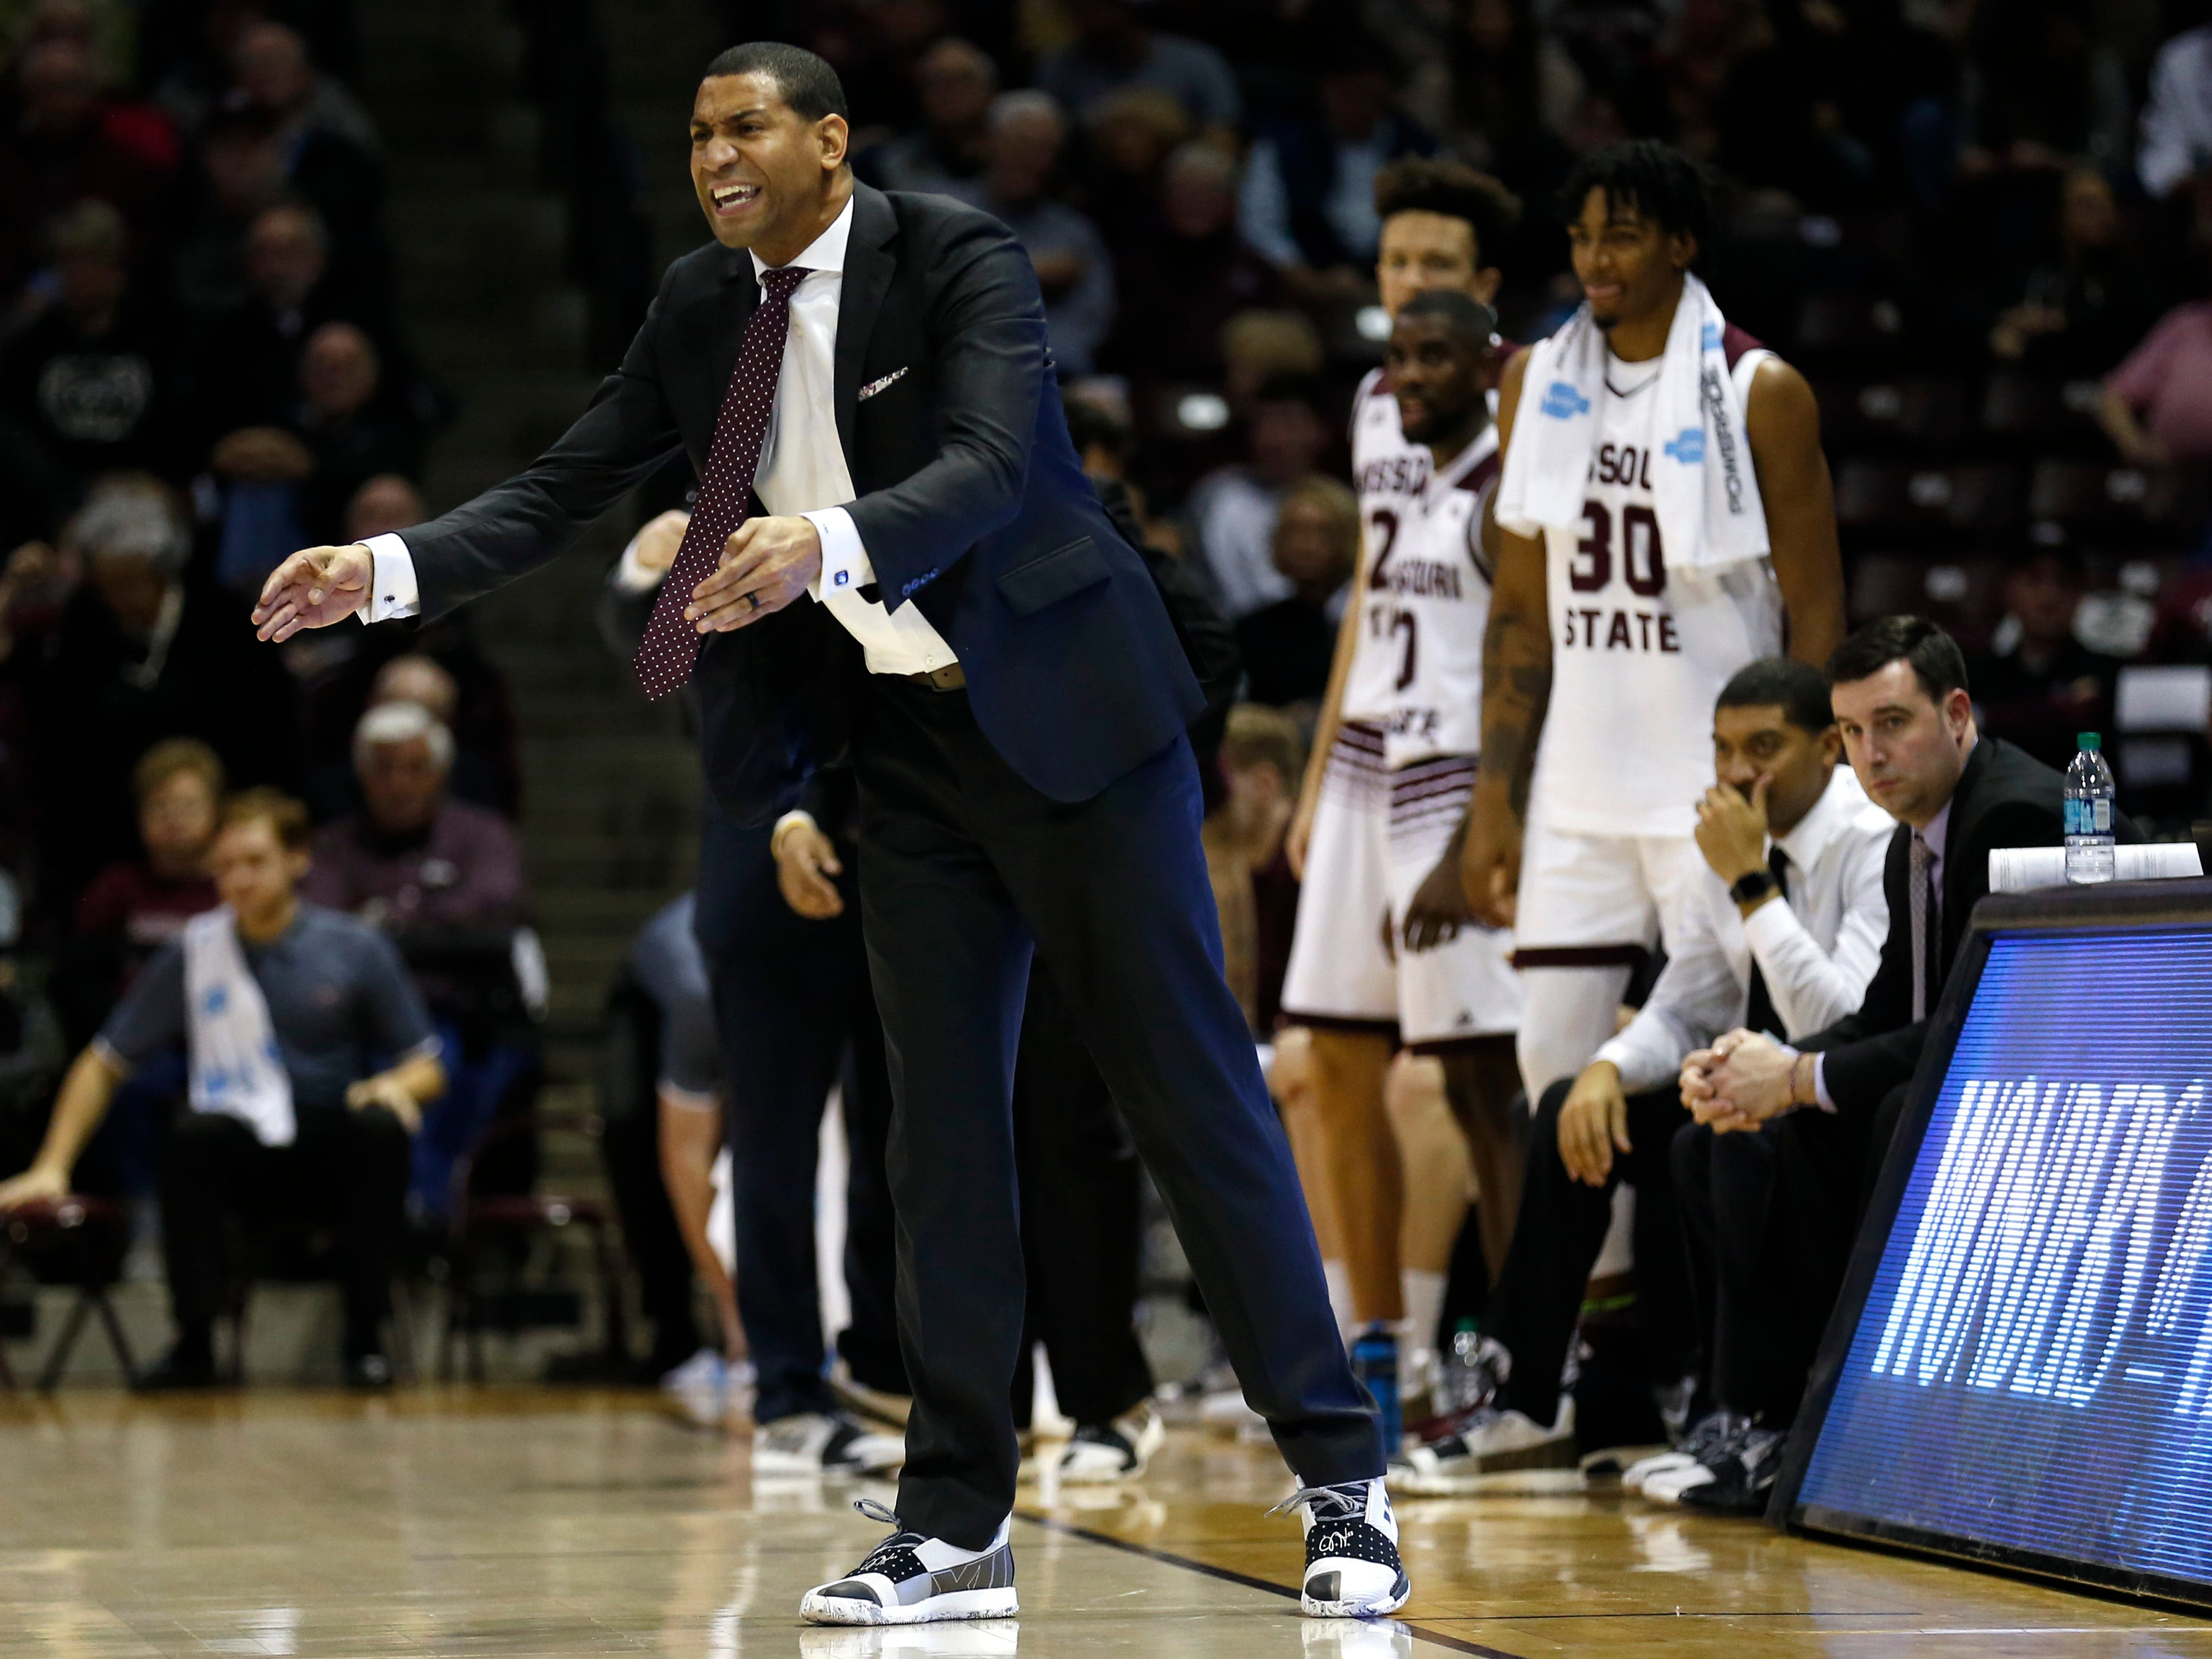 The Missouri State Bears take on the Southern Illinois Salukis at JQH Arena on Wednesday, Feb. 6, 2019.